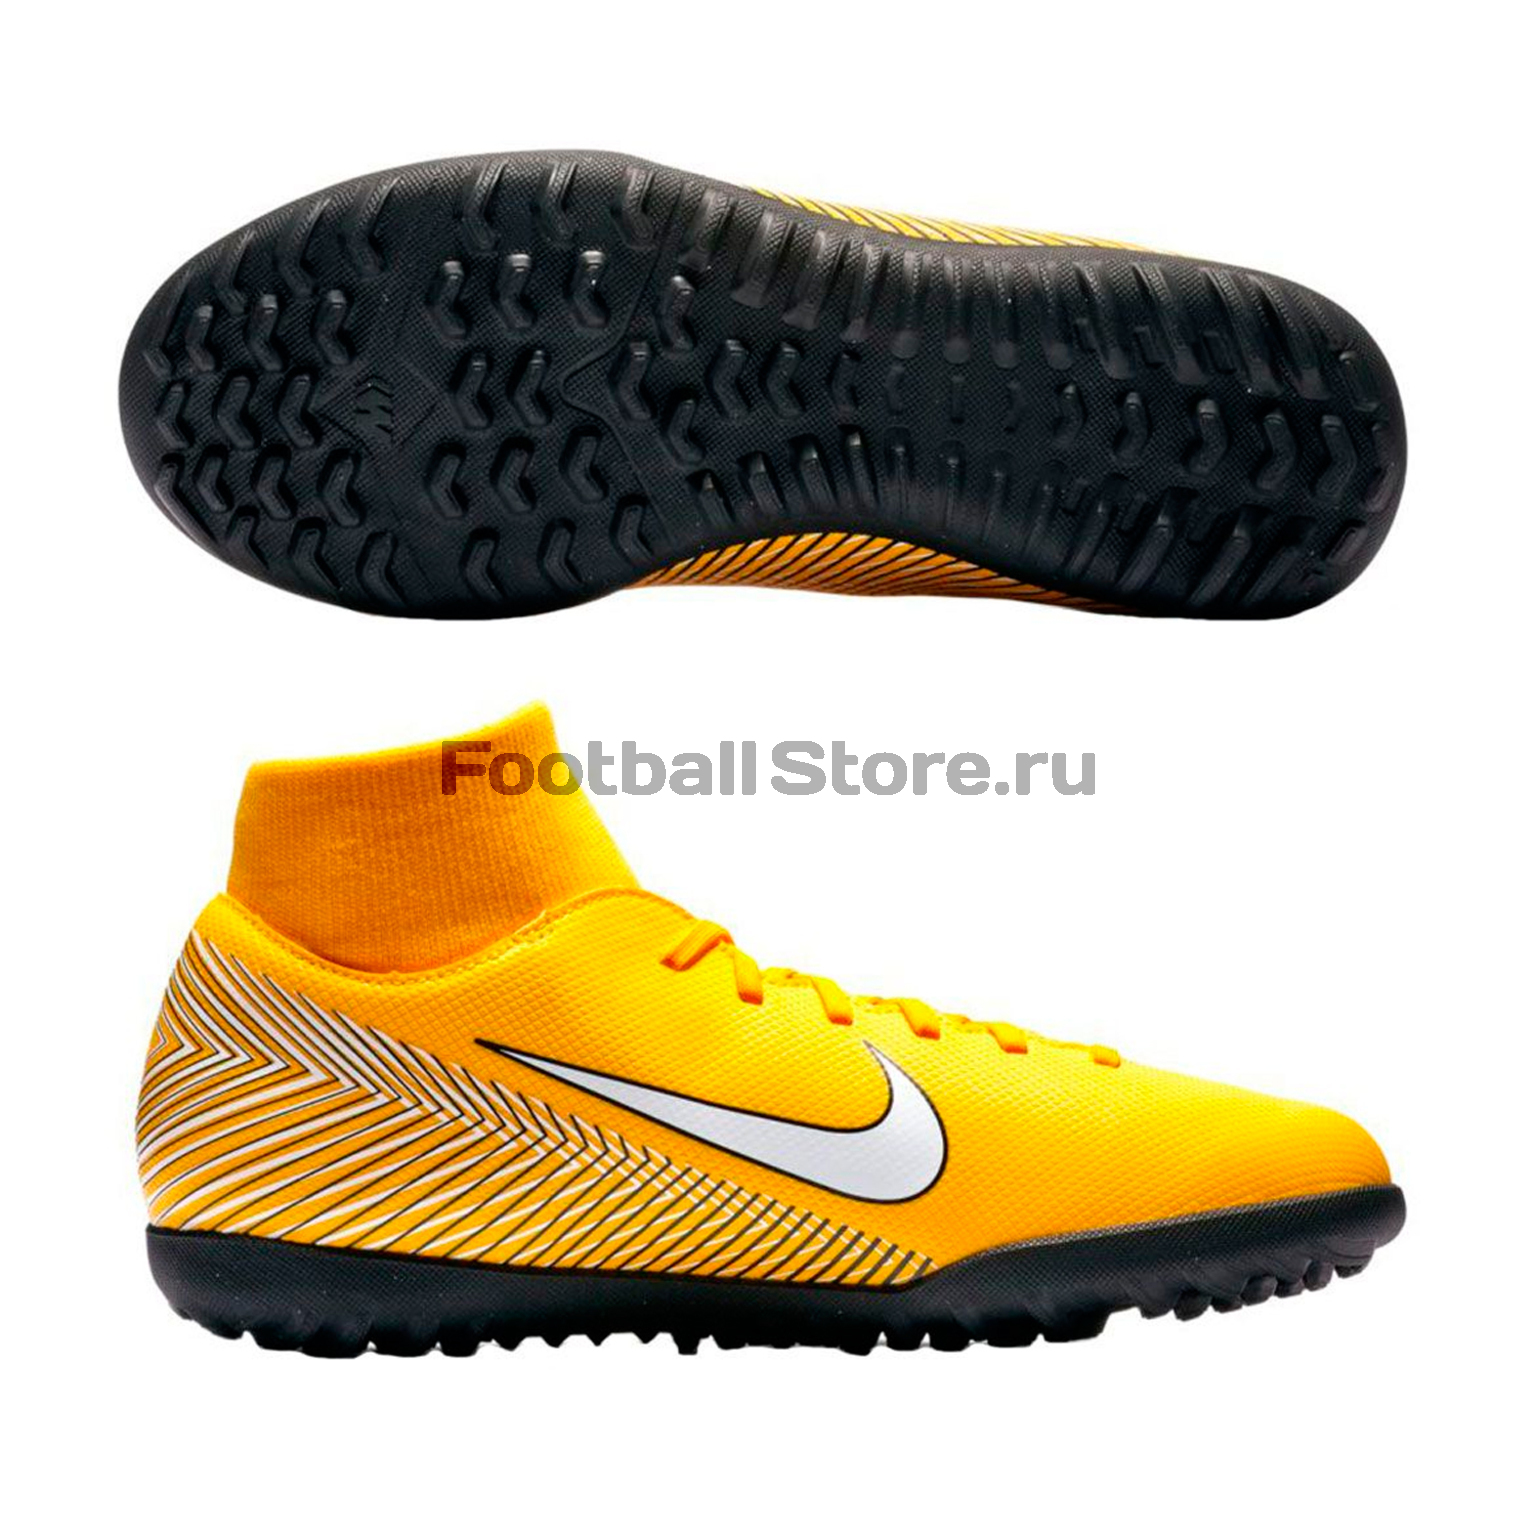 Шиповки Nike Superfly 6 Club Neymar TF AO3112-710 шина nokian hakkapeliitta c3 195 65 r16 104 102r